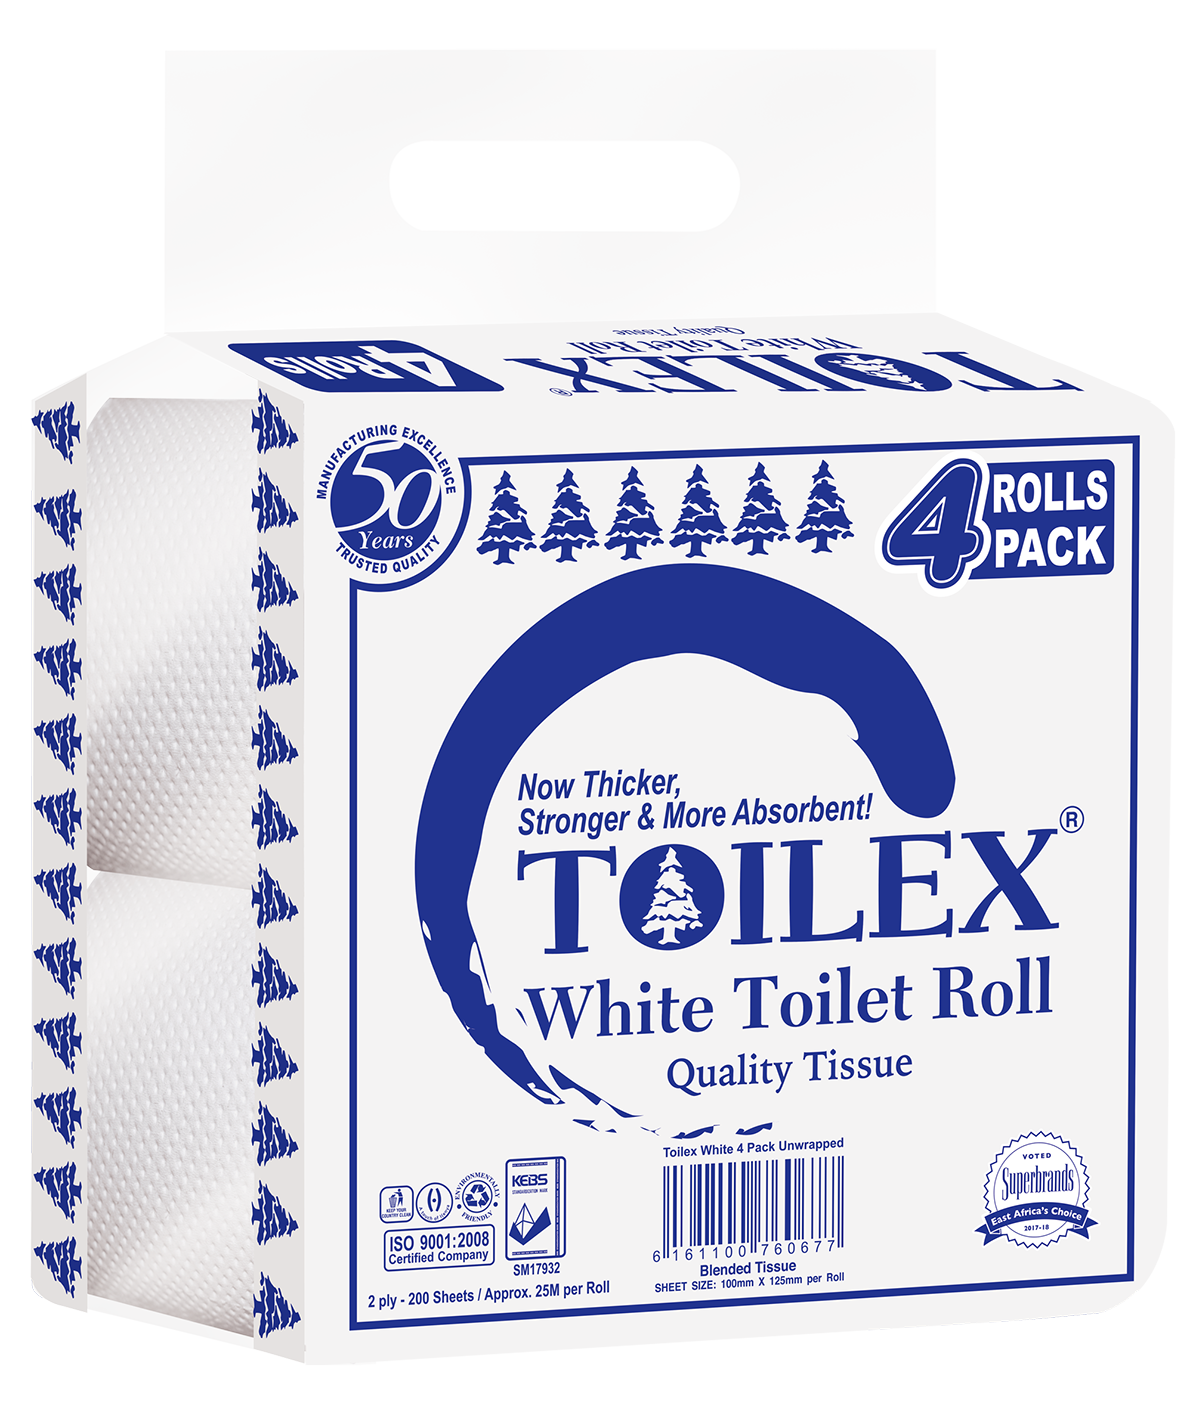 Toilex-4pack.png - 1017.14 kb